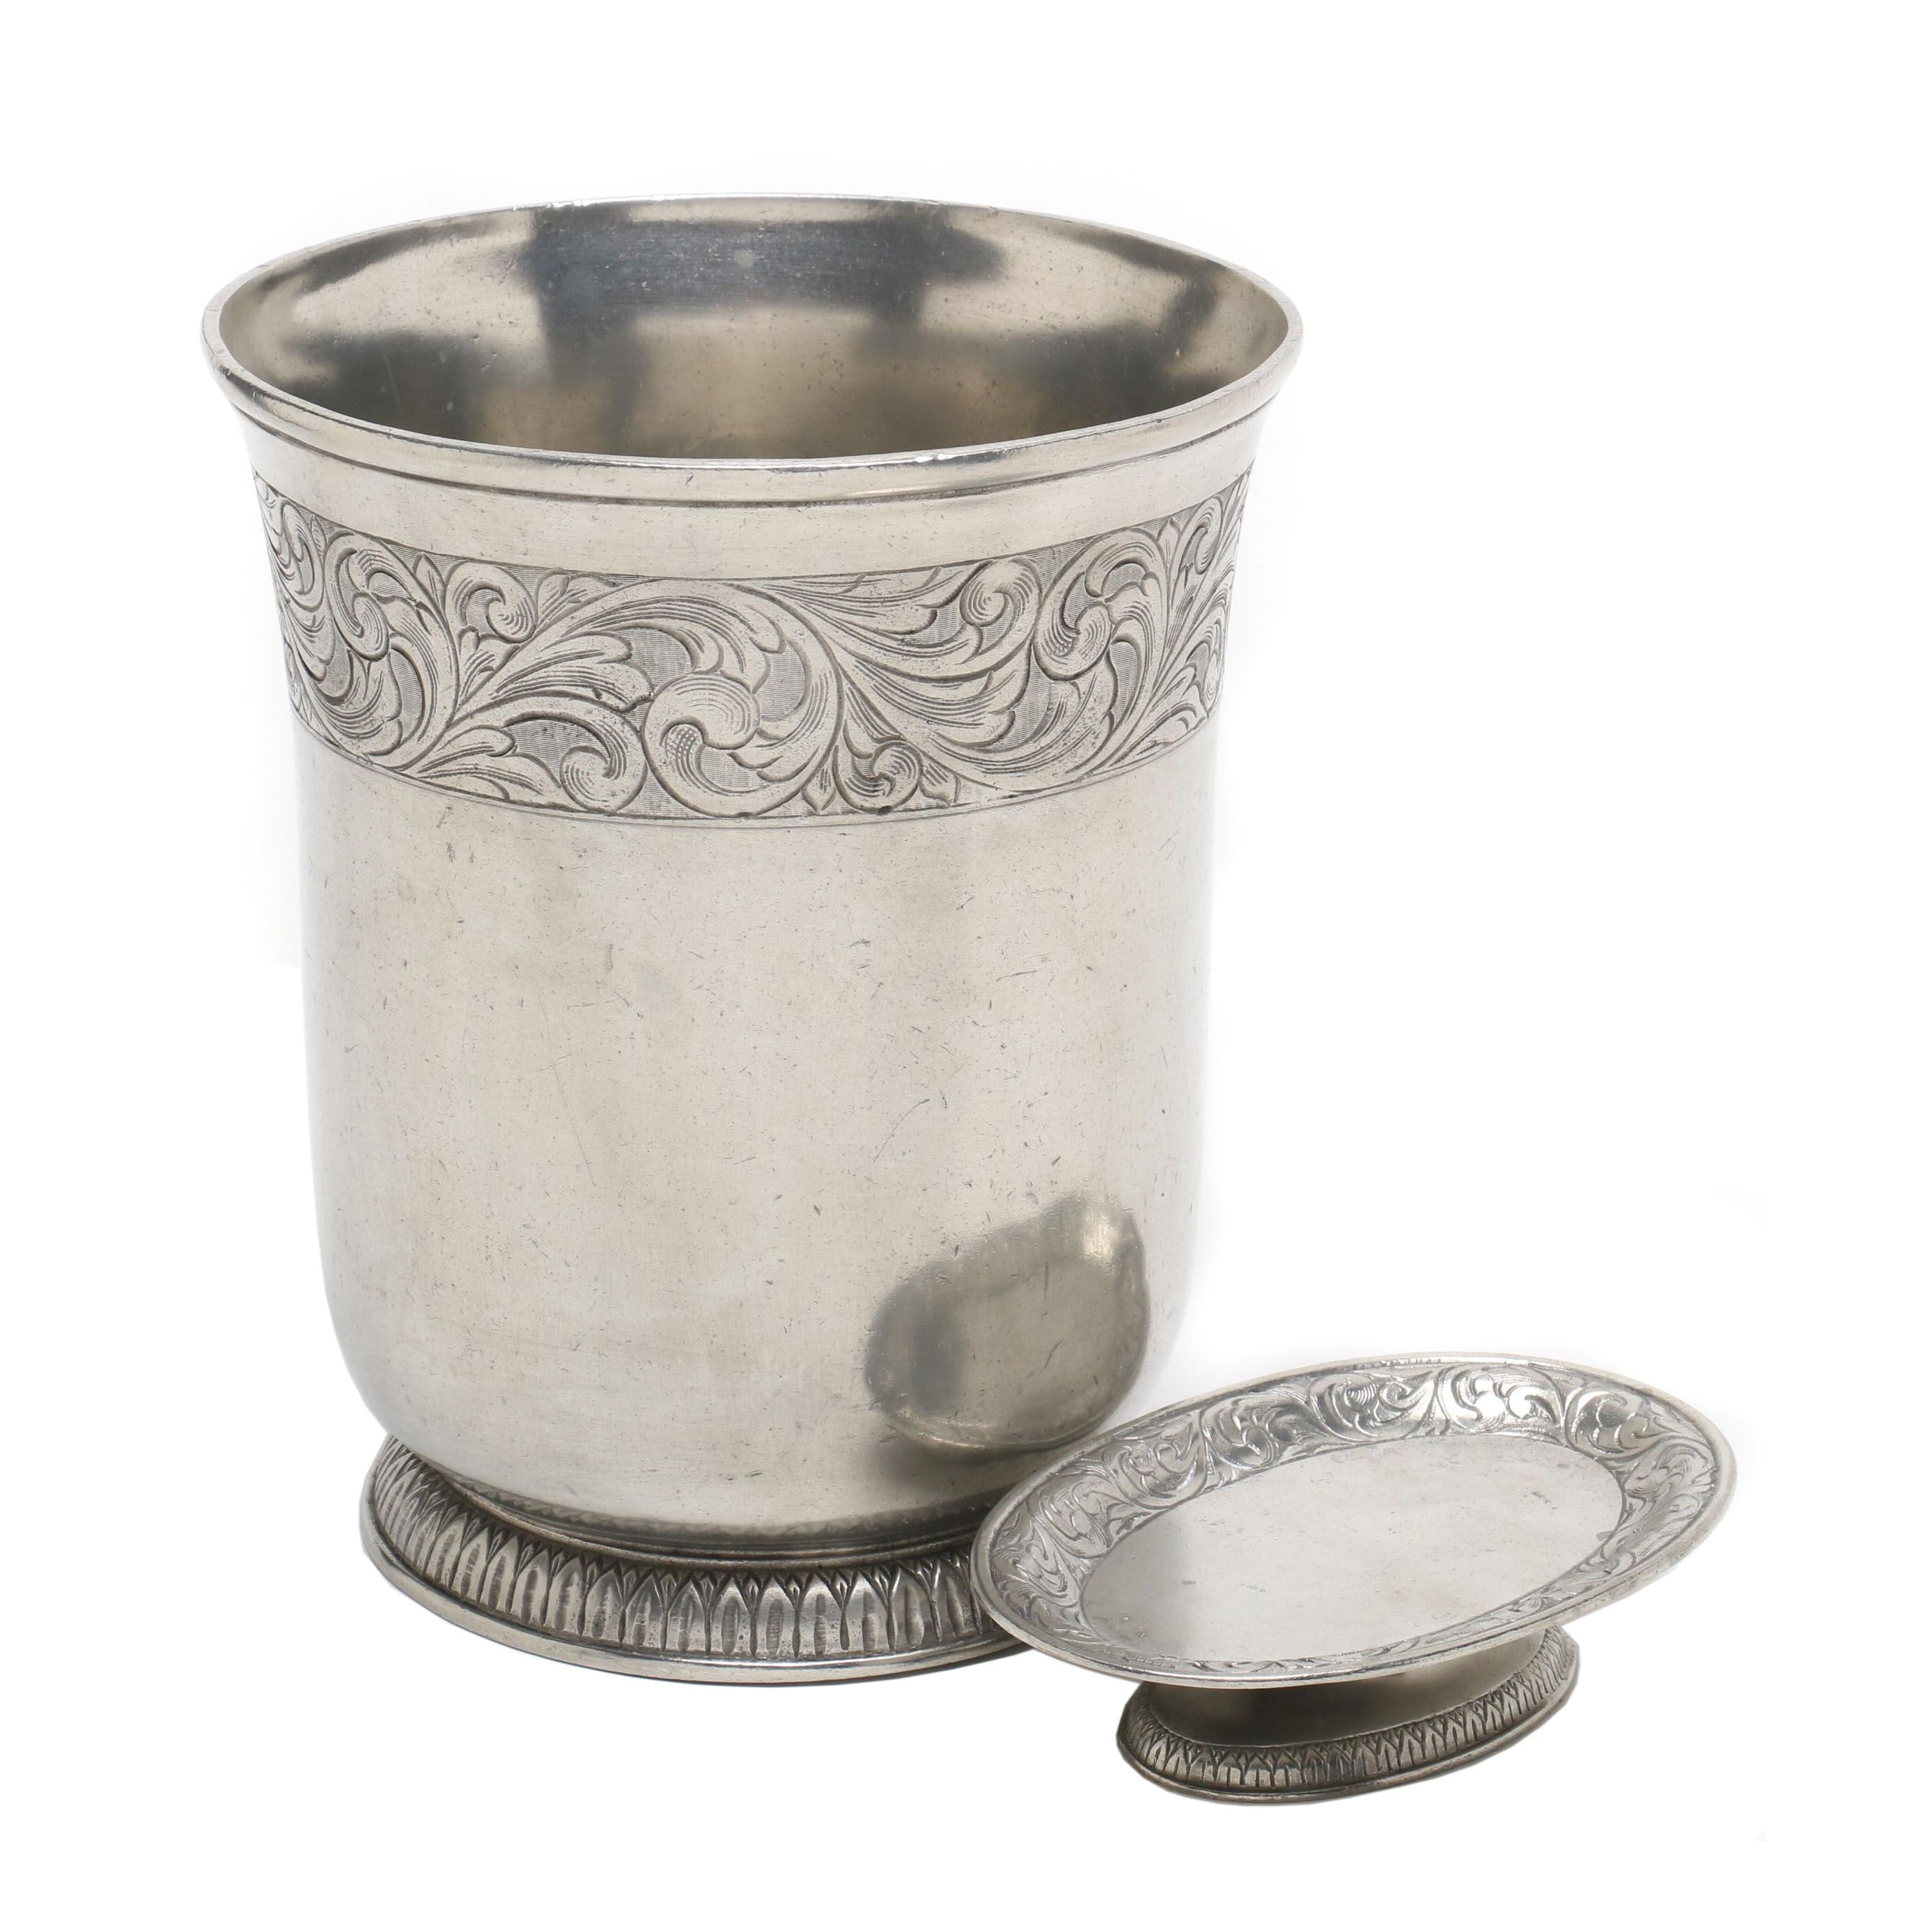 Pewter Waste Basket and Soap Dish by LaBrazel